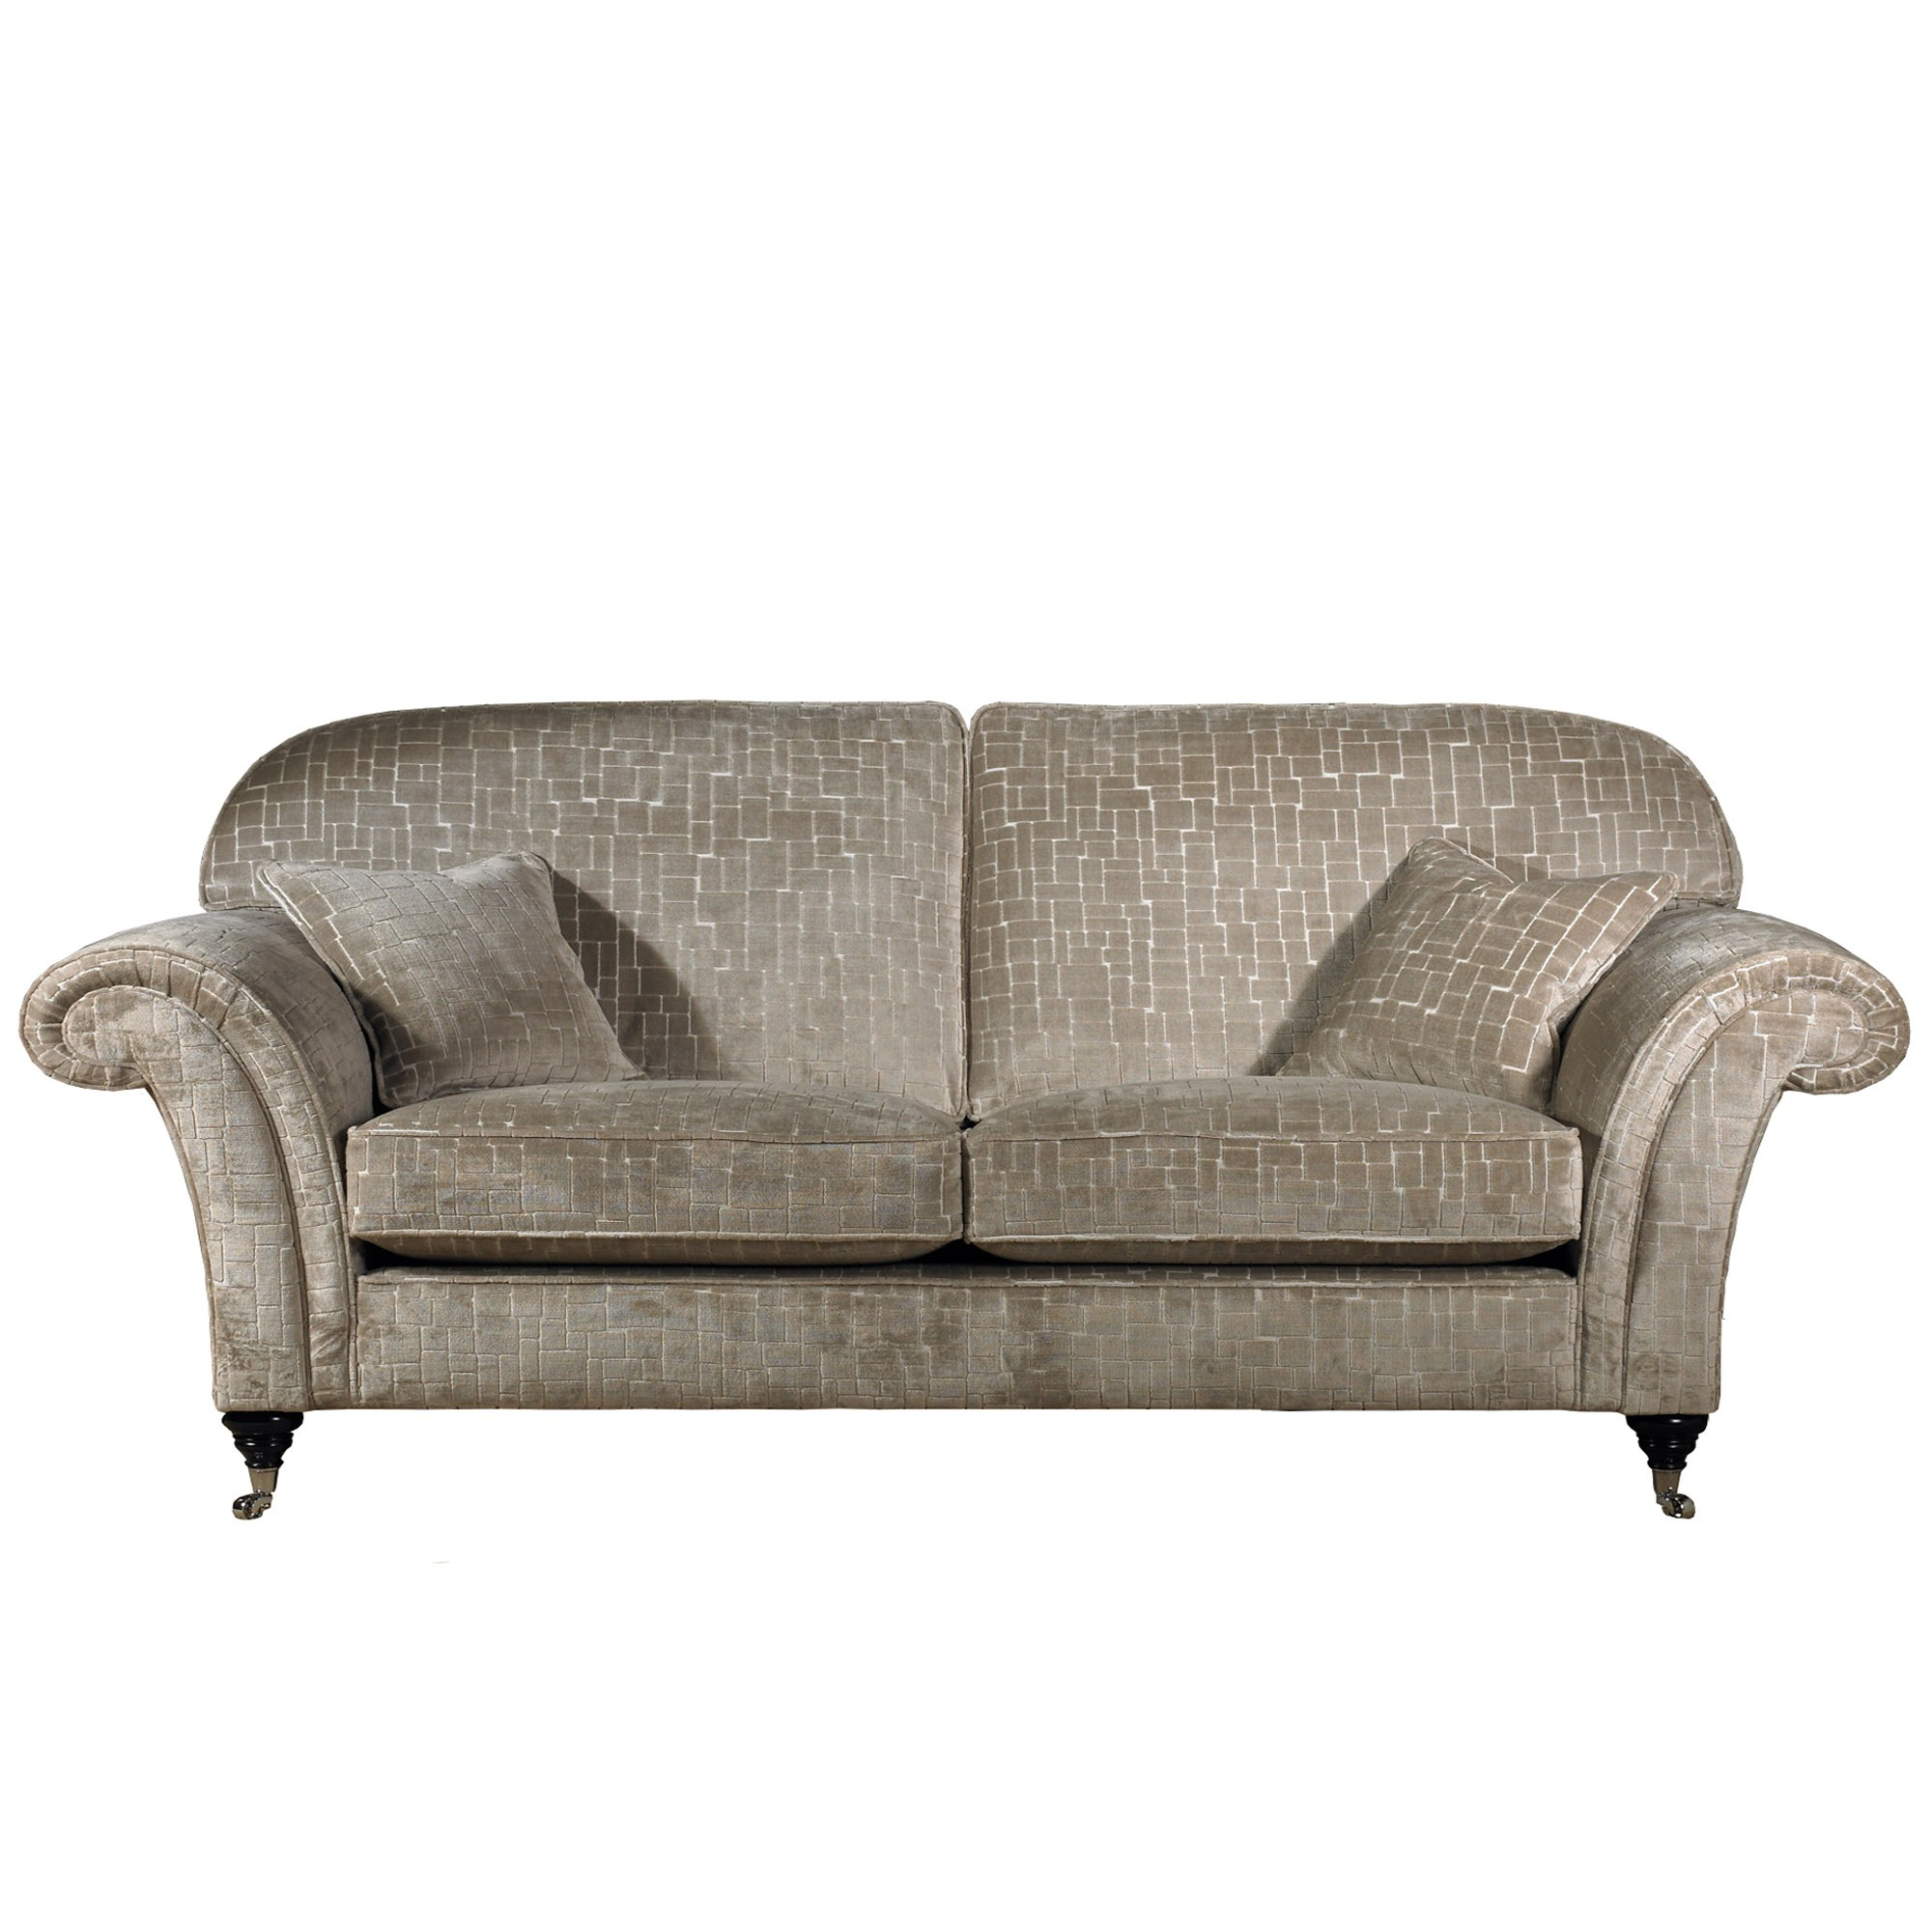 Wade Upholstery Jasper Large Sofa Formal Back  All Sofas. Retractable Roof. Formal Living Room Sets. Cheap Flooring Ideas. Fast Response Heating And Cooling. Wrought Iron Chandelier. End Table Height. Movable Kitchen Island. Leather Dining Chair